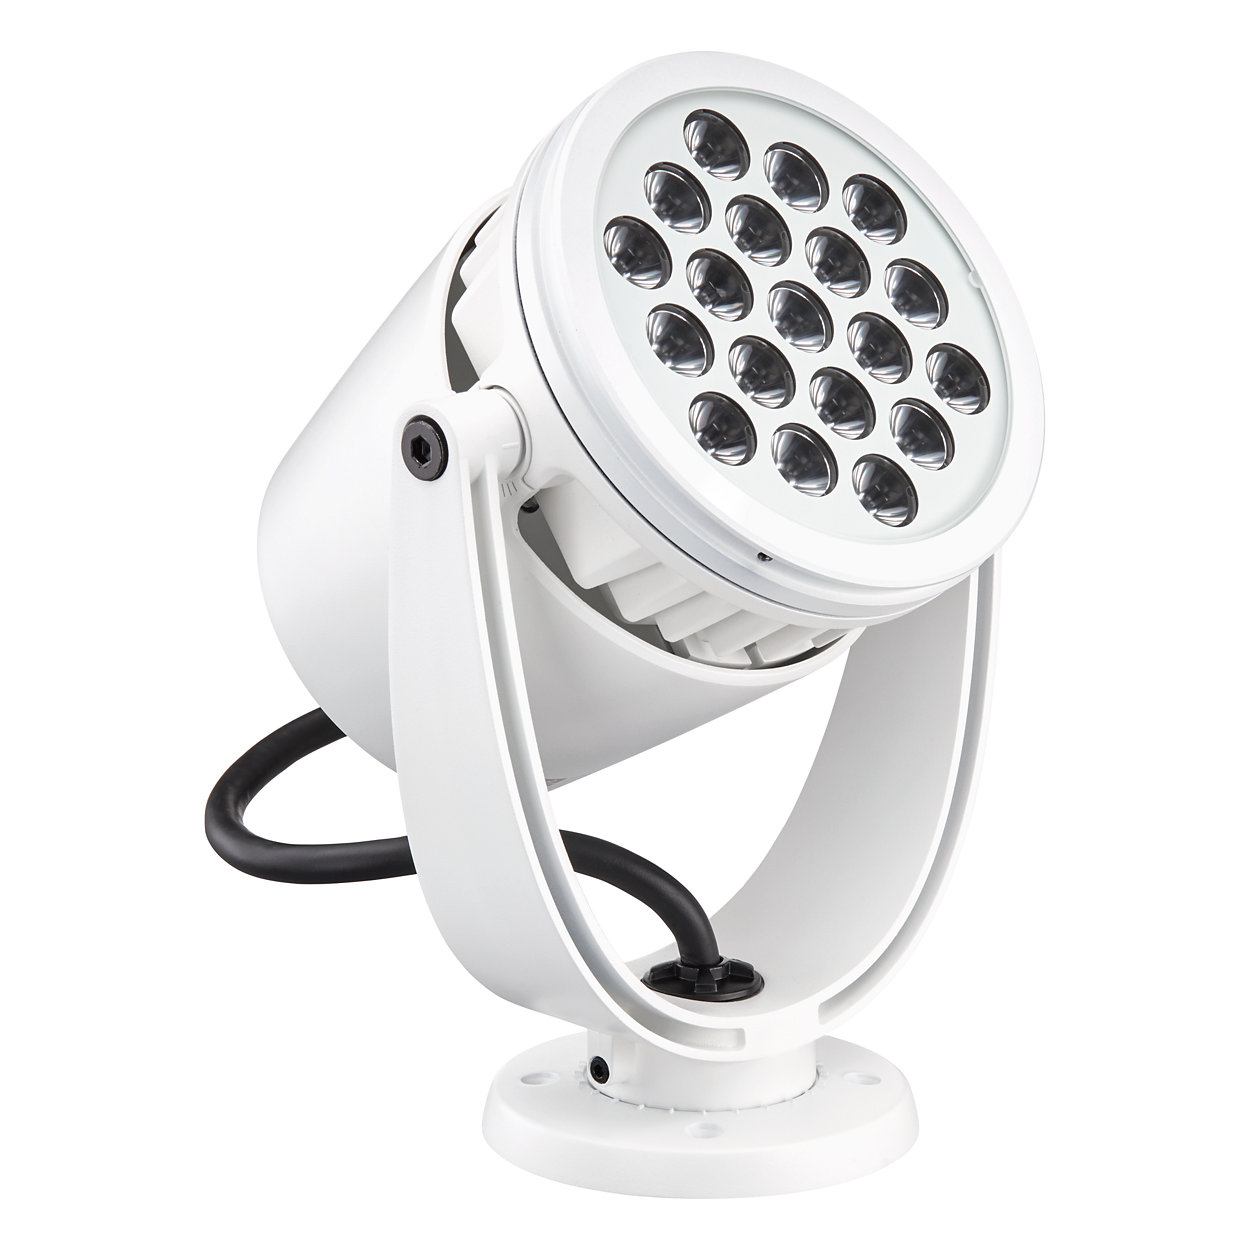 eColor Burst Powercore gen2 - Architectural and landscape LED spotlight with solid color light